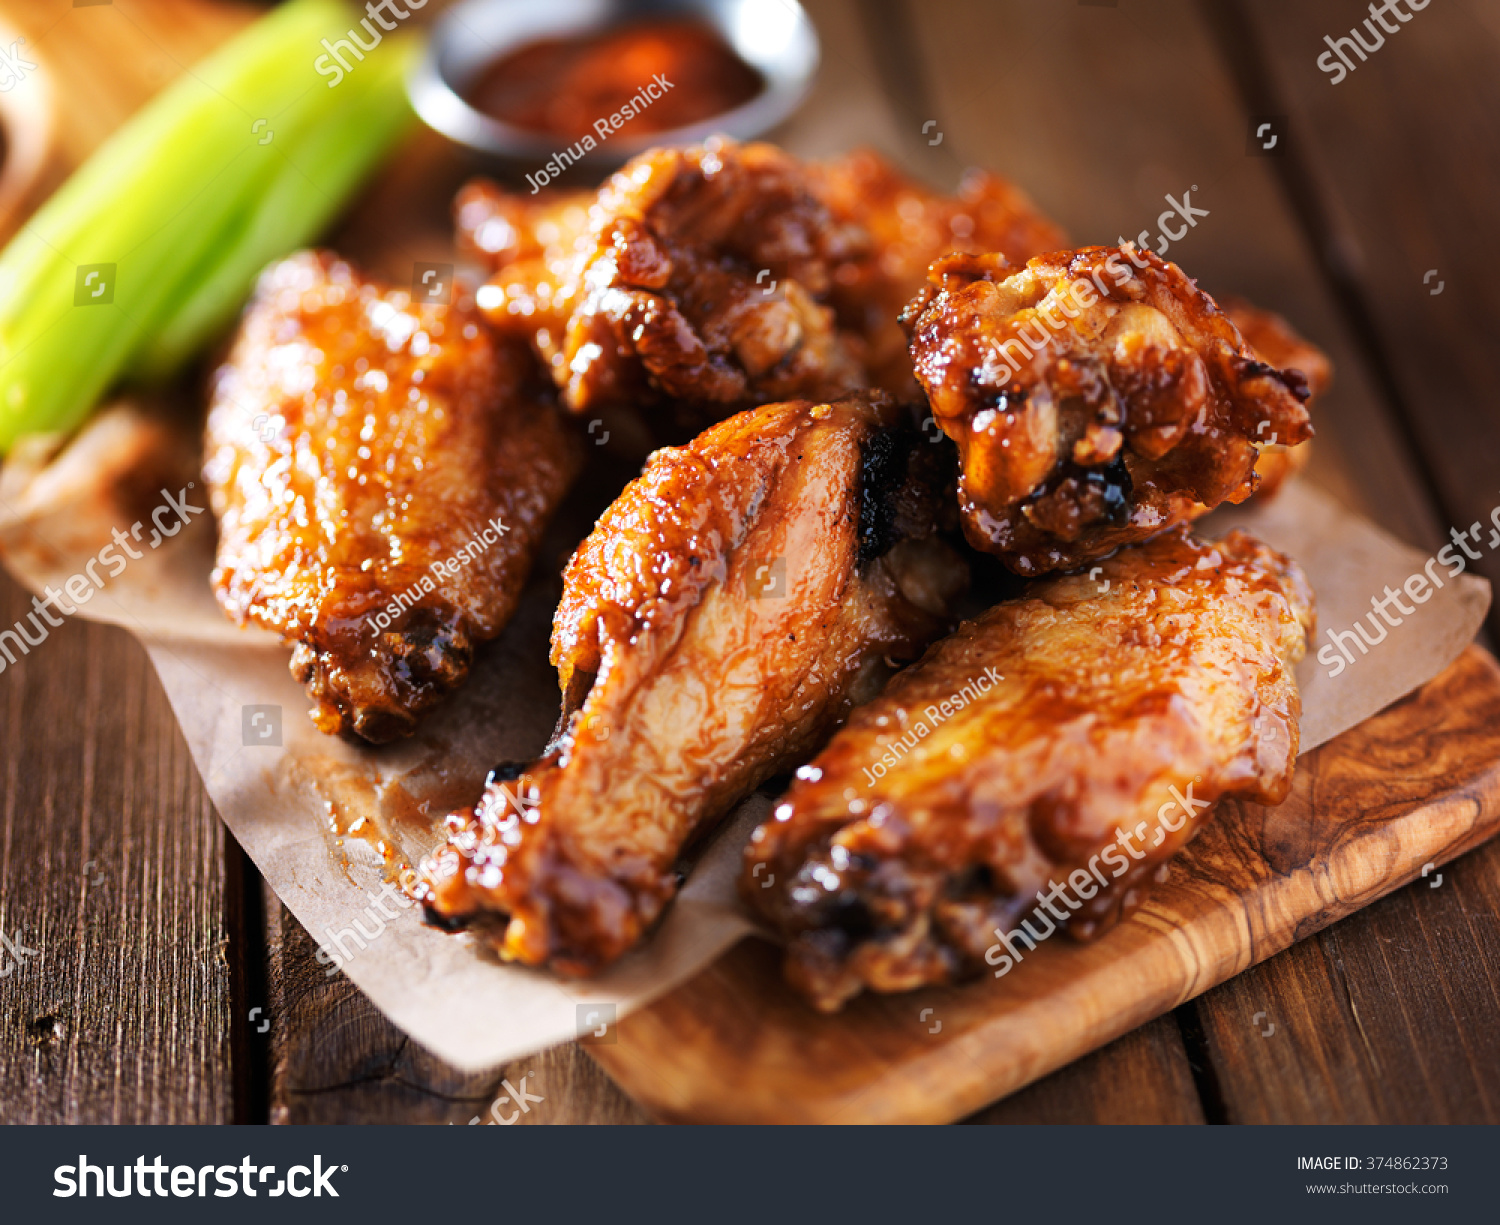 barbecue chicken wings close up on wooden tray shot with selective focus #374862373